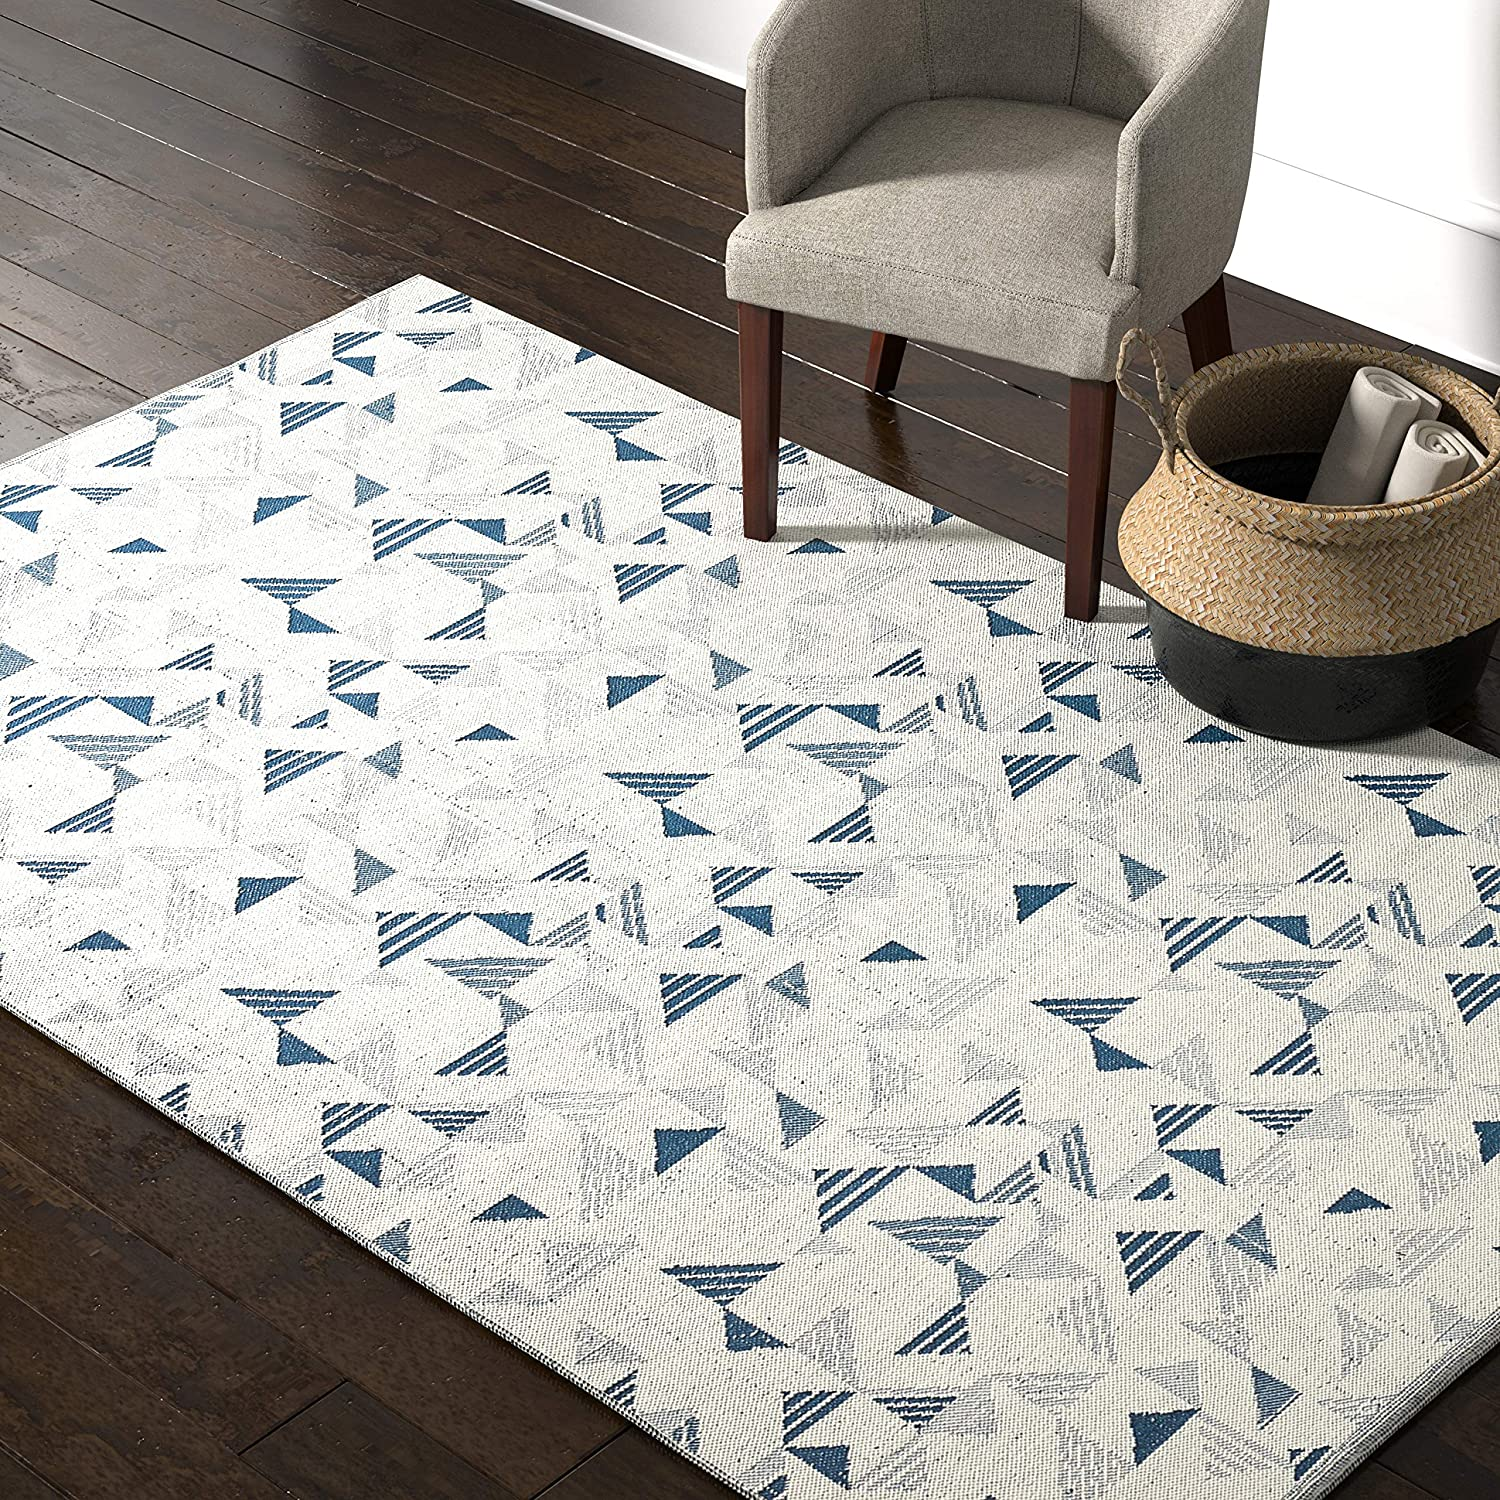 Amazon Brand Rivet Modern Geometric Triangle Wool Area Rug 5 X 8 Foot Blue Ivory Furniture Decor